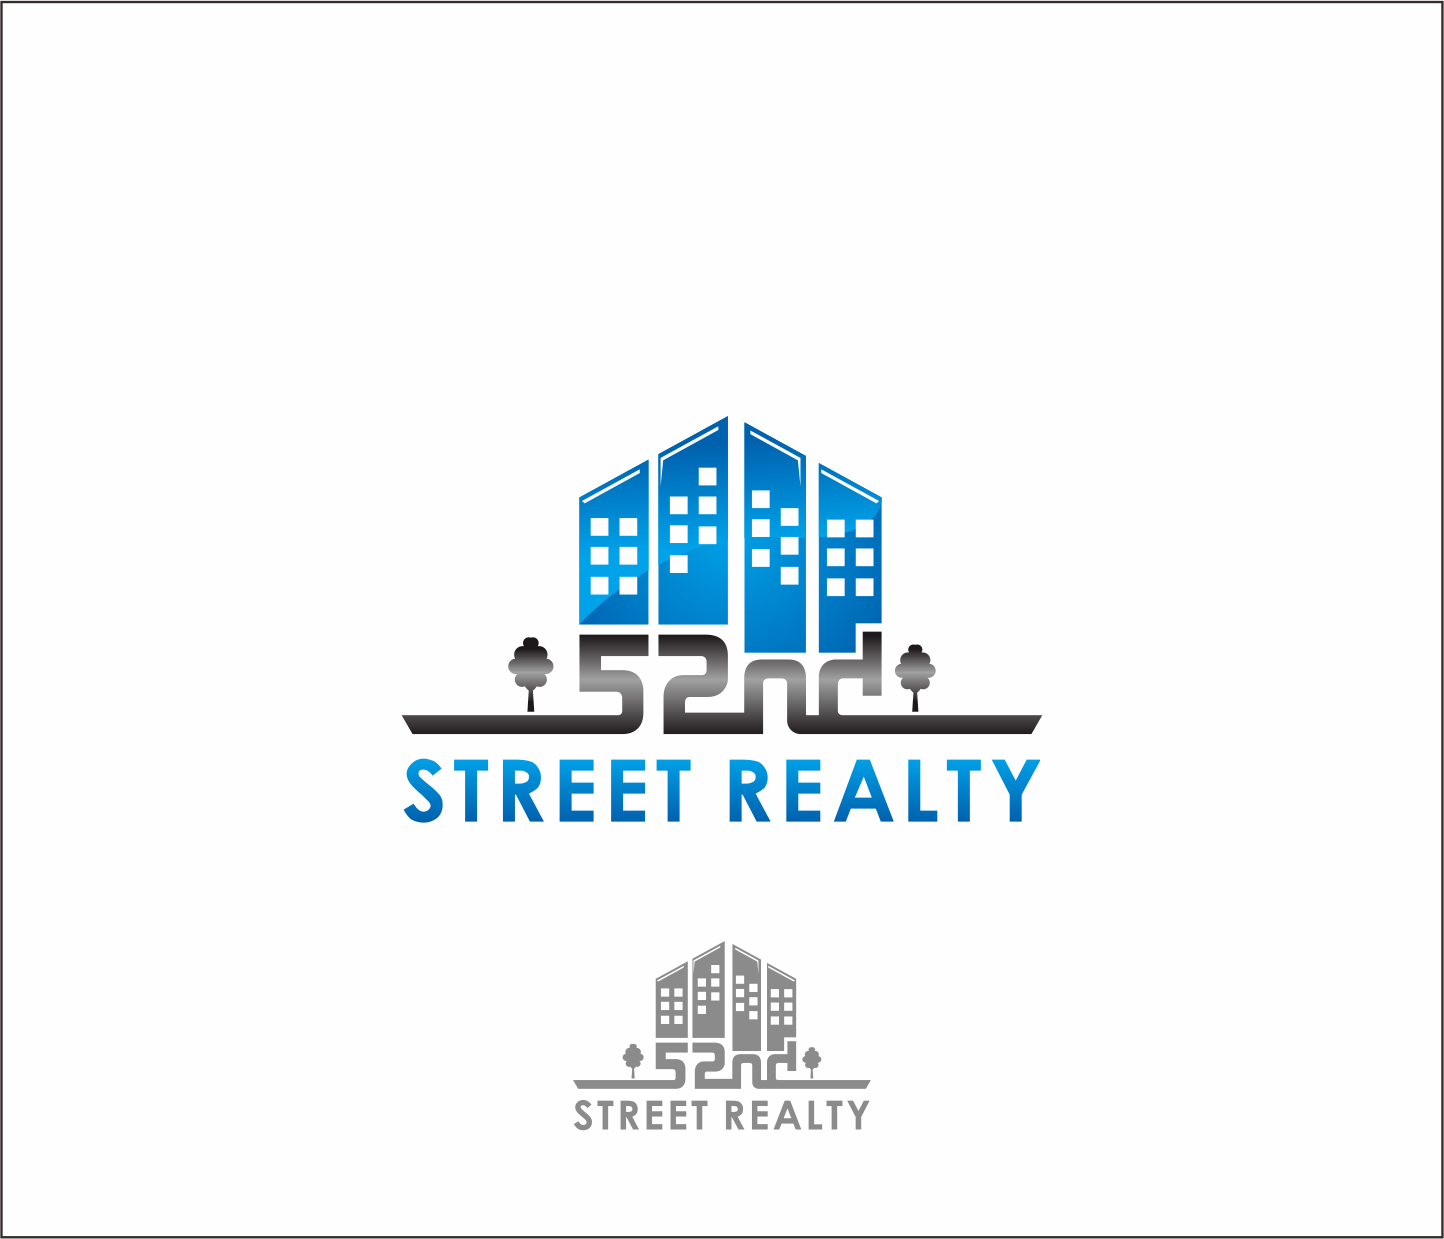 Logo Design by Armada Jamaluddin - Entry No. 73 in the Logo Design Contest 52nd Street Realty Logo Design.